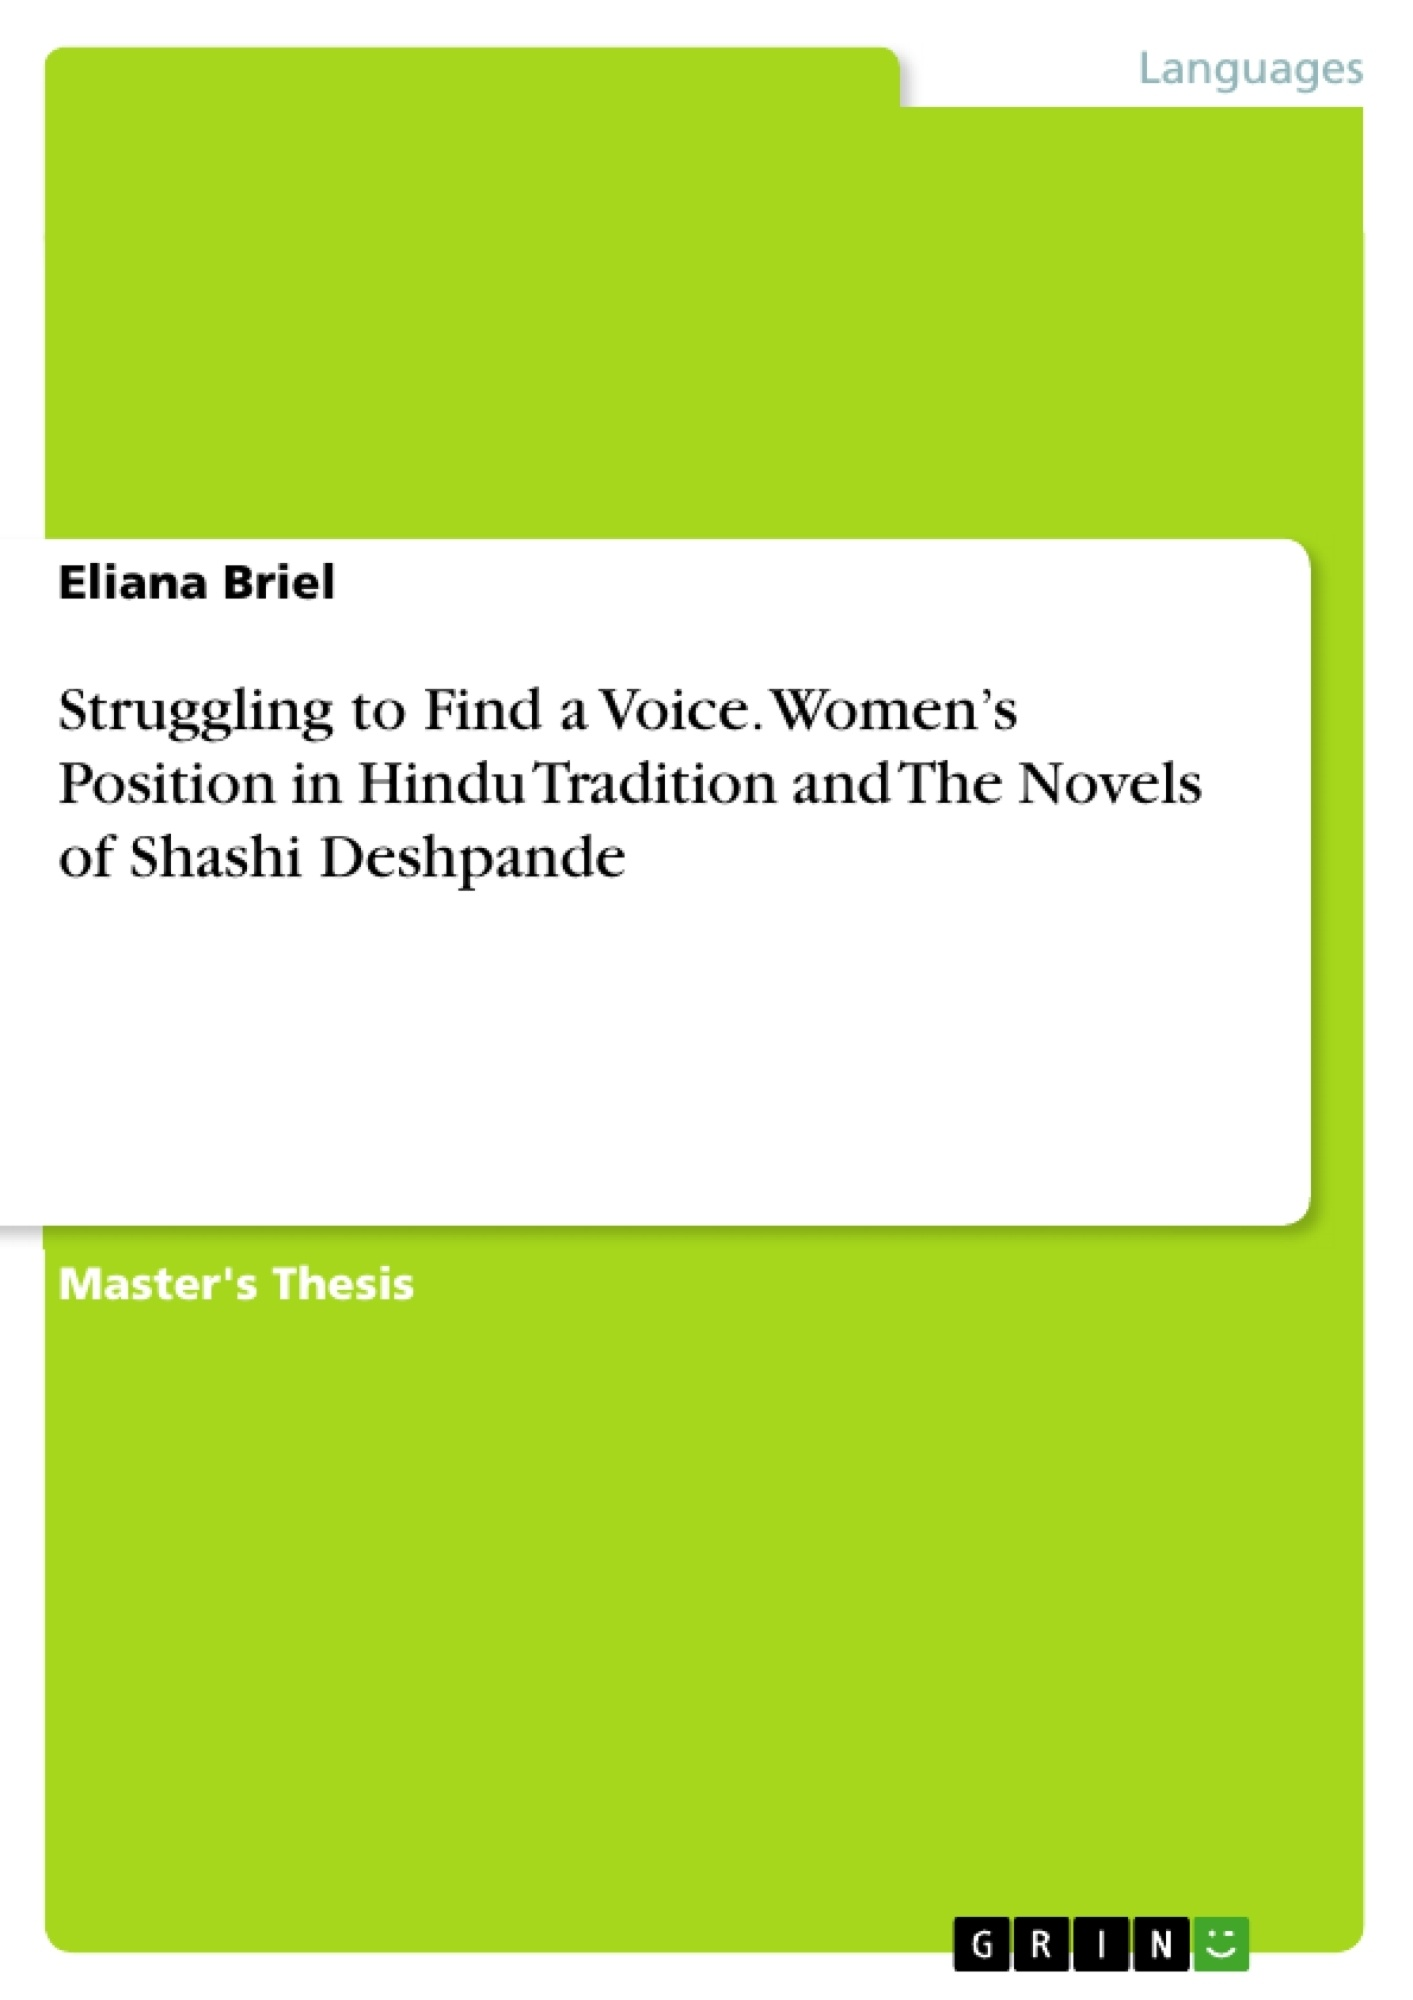 Title: Struggling to Find a Voice. Women's Position in Hindu Tradition and The Novels of Shashi Deshpande